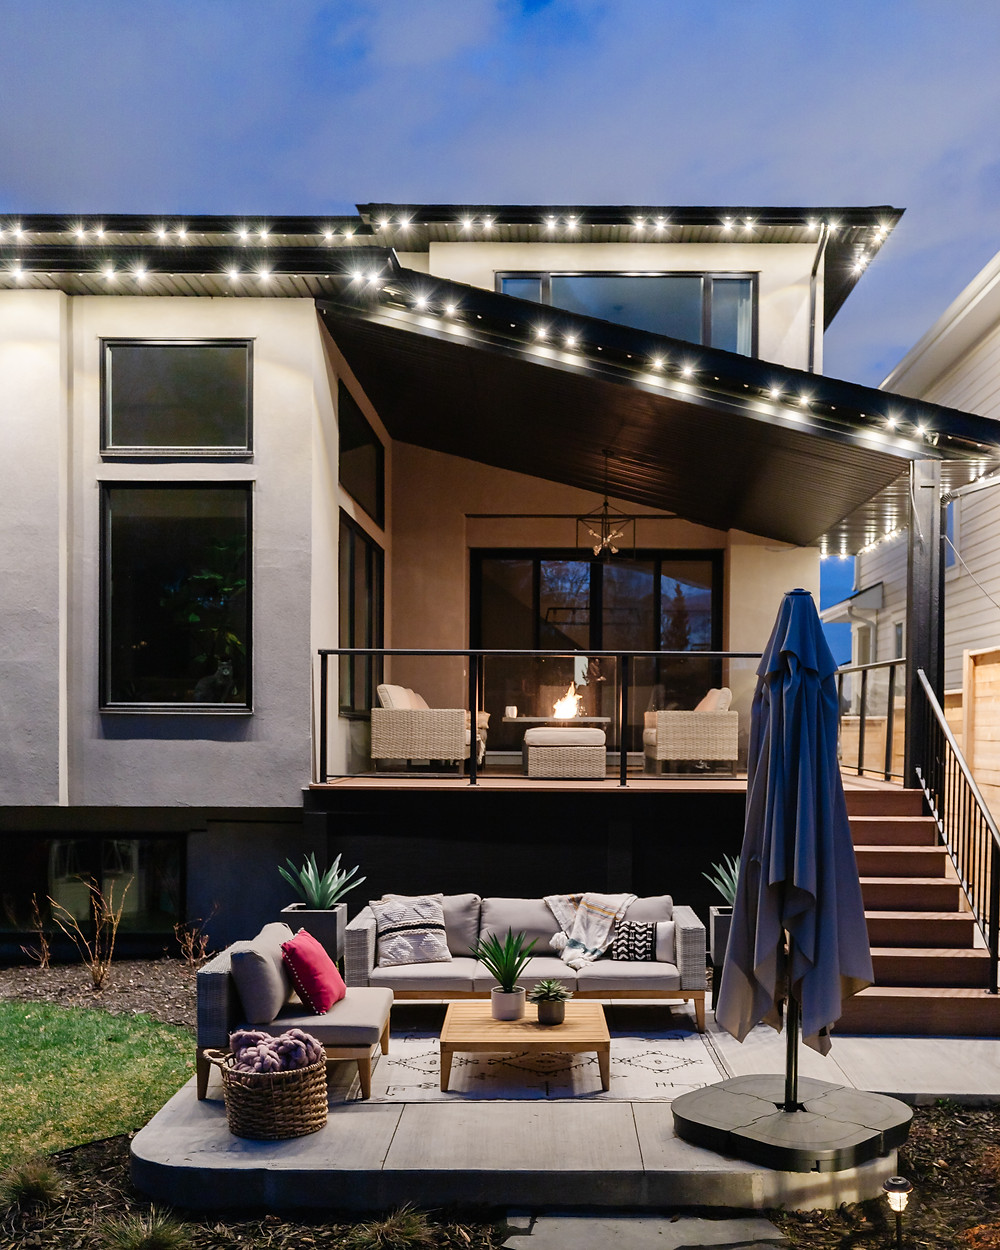 A modern home exterior with warm white Gemstone Lights shining down on a beautiful styled patio with a fire table, white sofa set succulents, a wooden table, and a large patio umbrella.